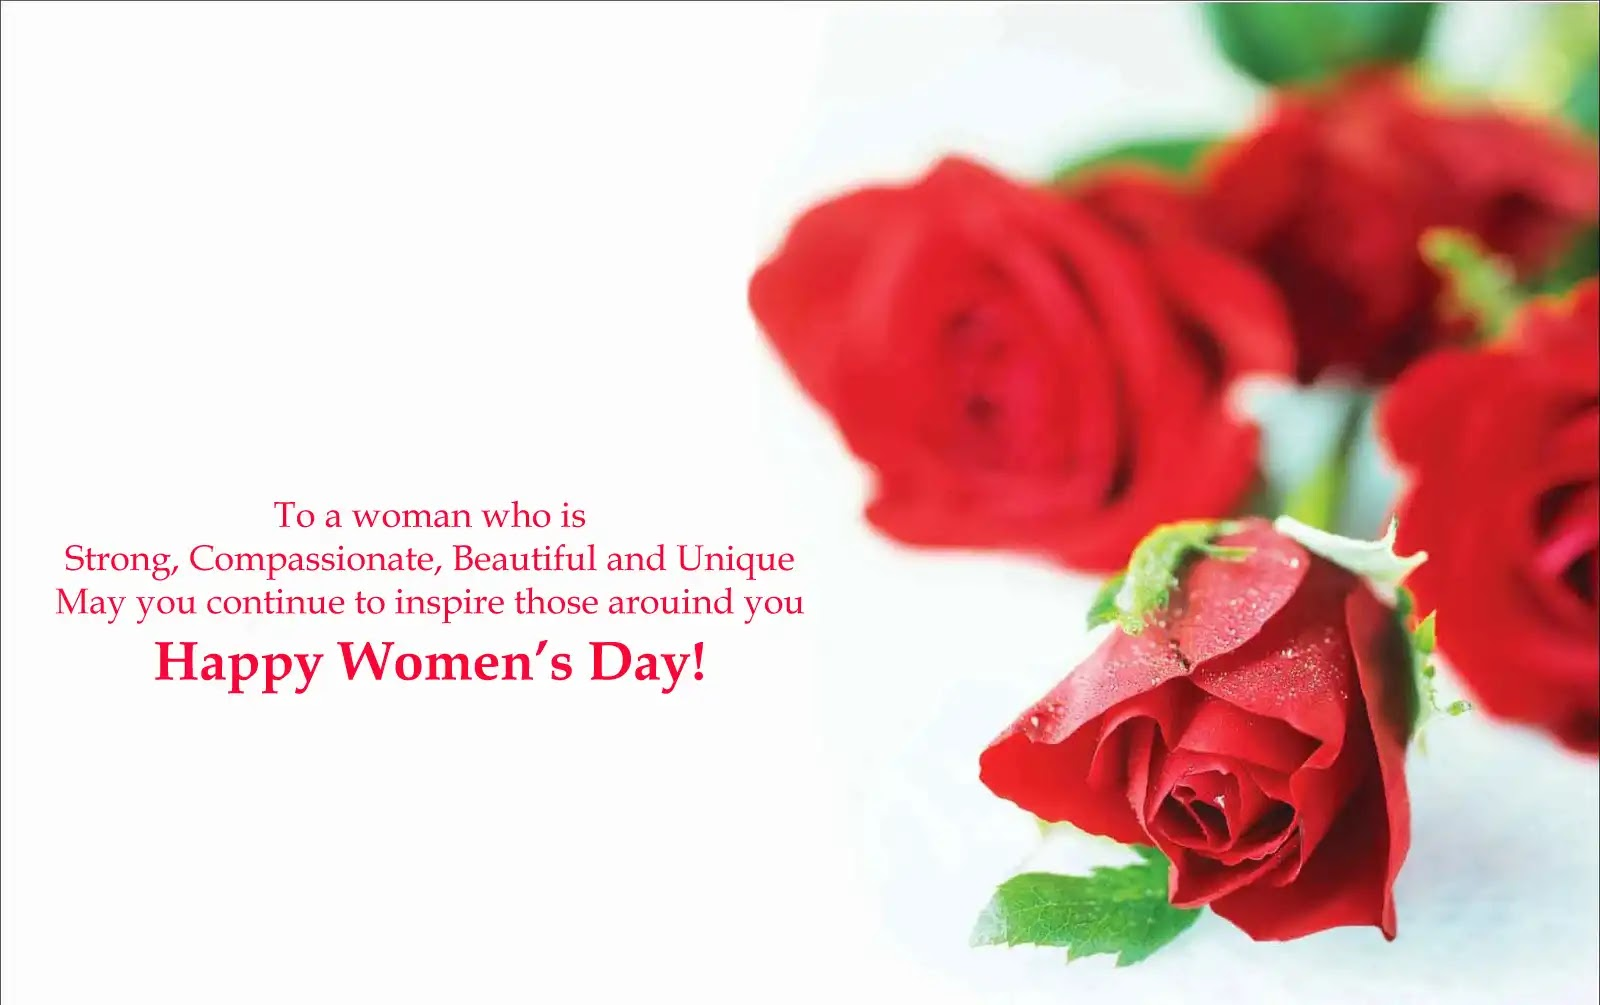 Happy Women's Day Images Download